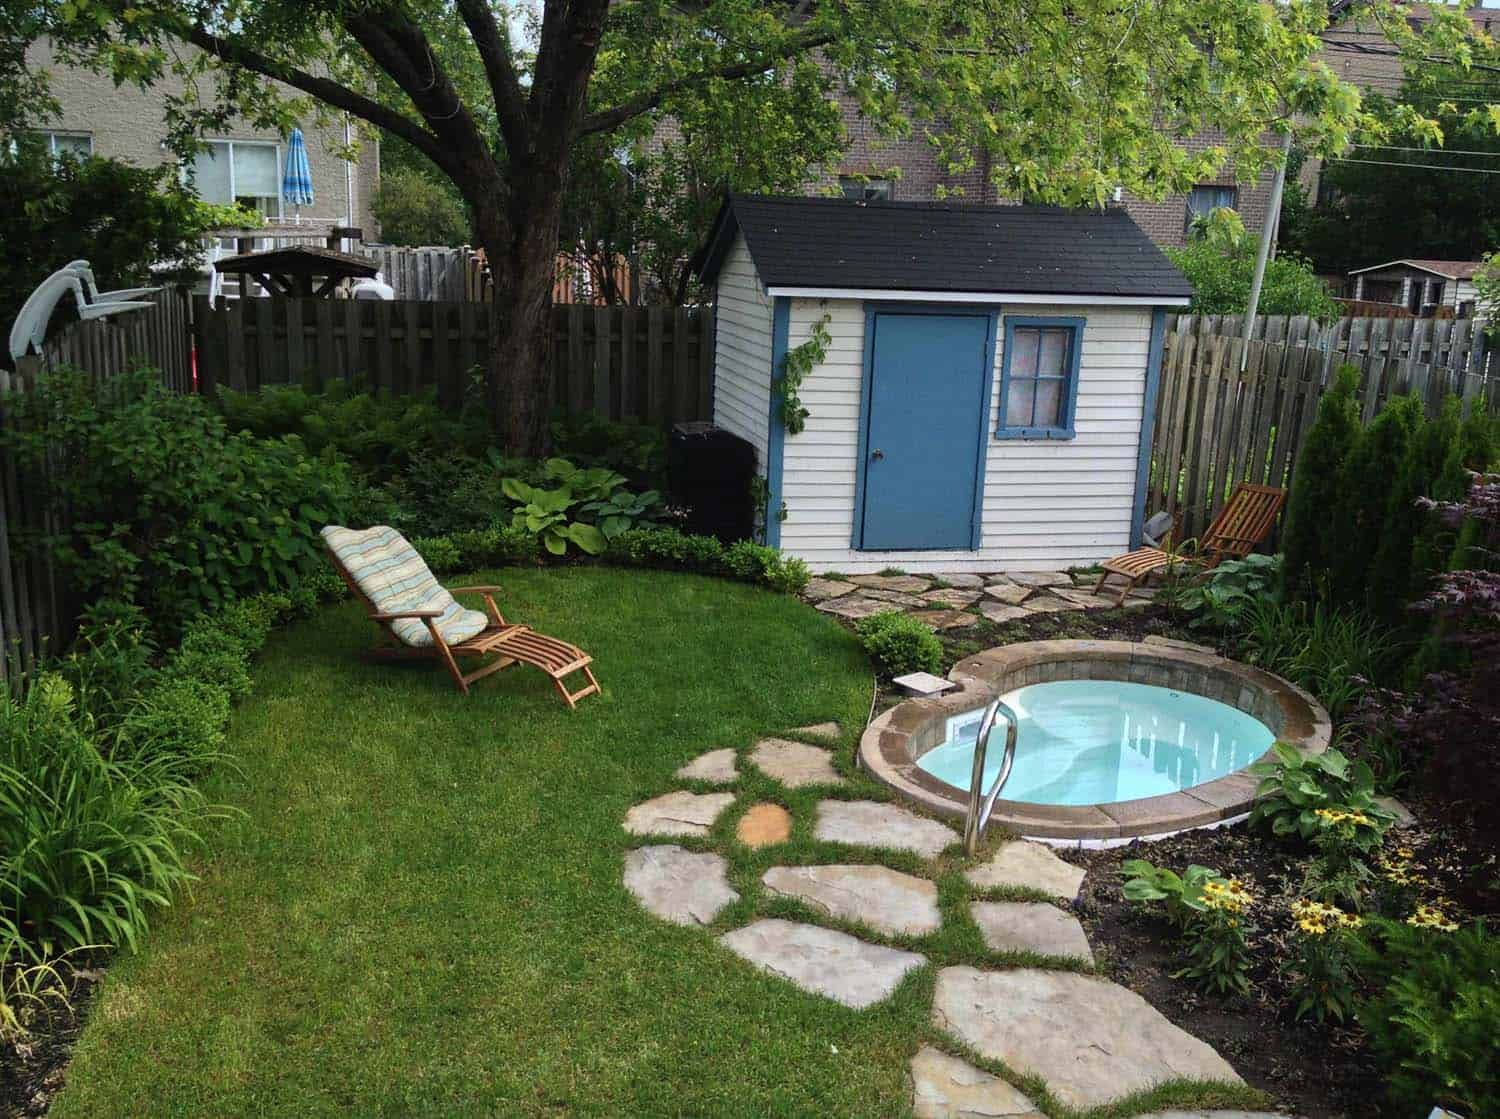 40 Outstanding Hot Tub Ideas To Create A Backyard Oasis Small